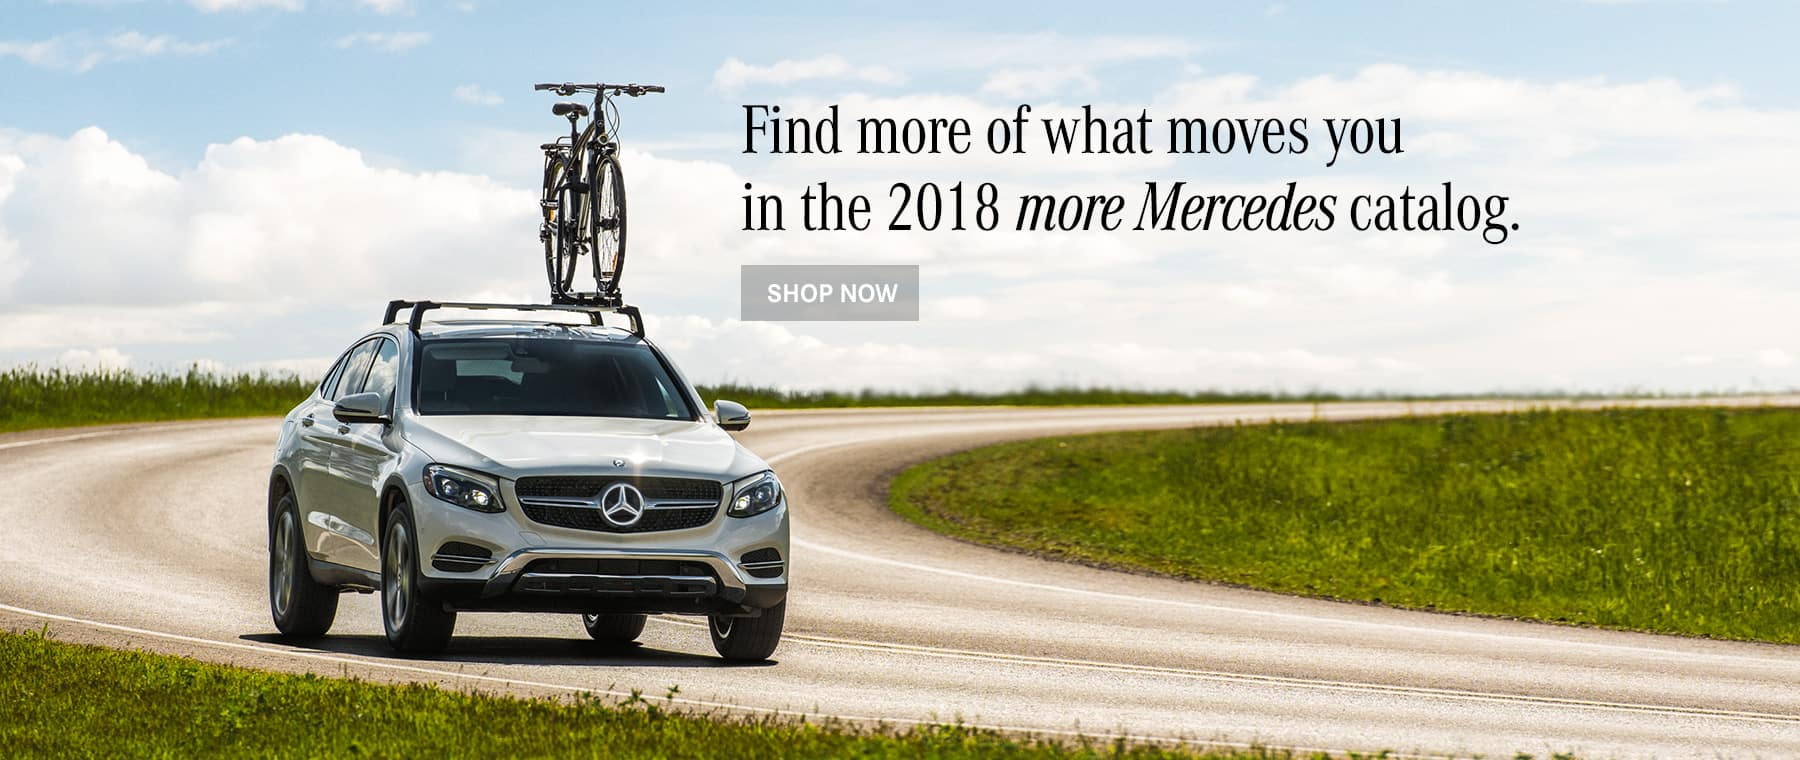 2018 Mercedes-Benz Catalog Banner